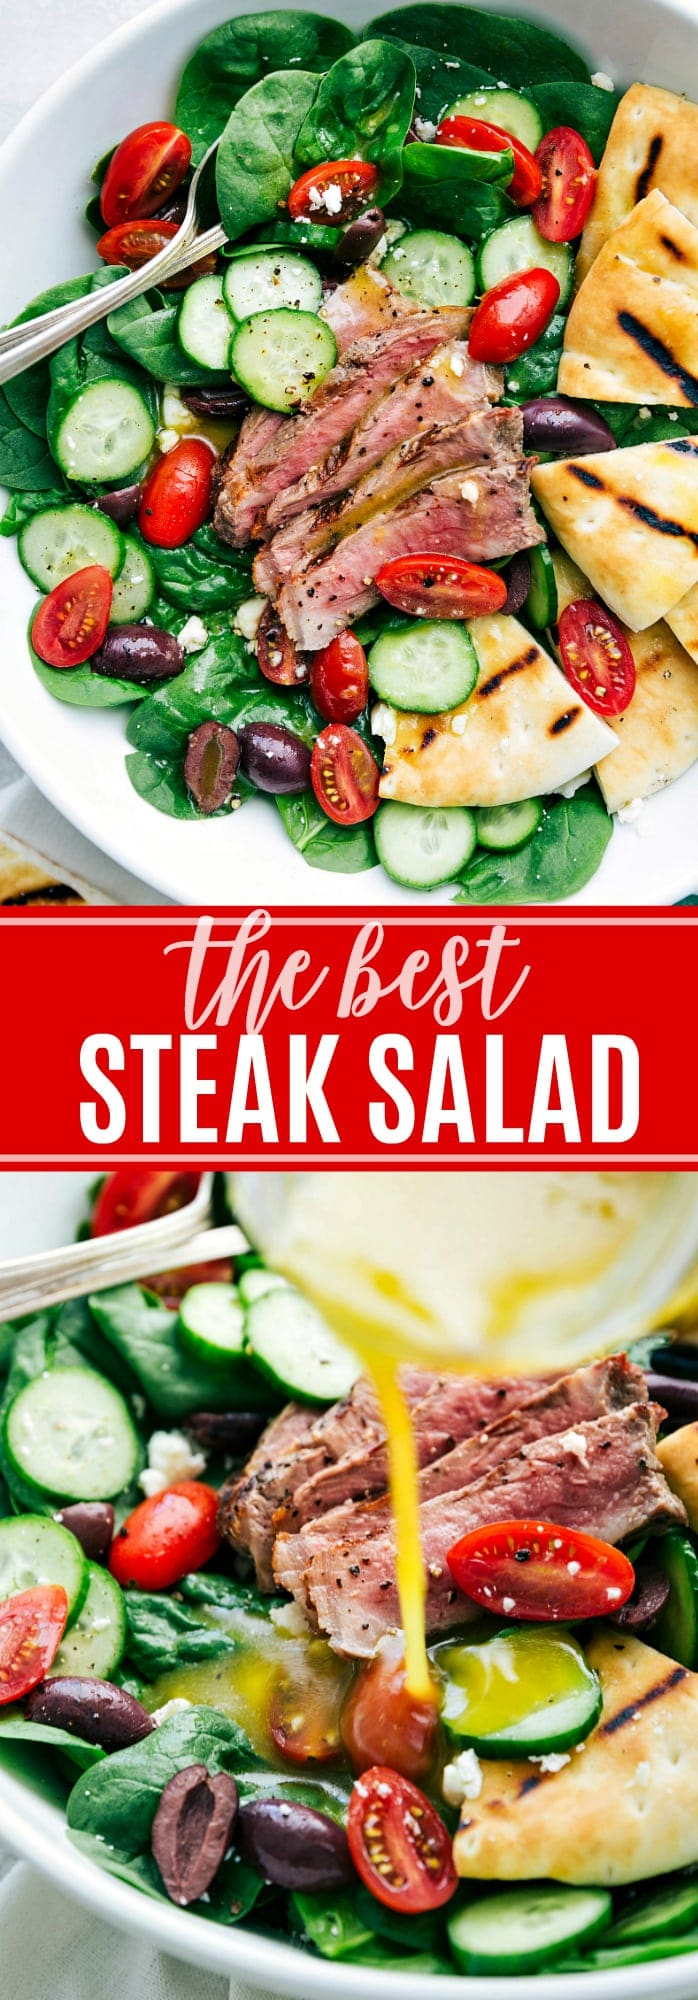 Grilled steak and pitas tossed with baby spinach, cucumbers, tomatoes, kalamata olives, and feta cheese dressed in a delicious lemon-honey vinaigrette. This steak salad is simple to make, healthy, and packed with flavor! via chelseasmessyapron.com